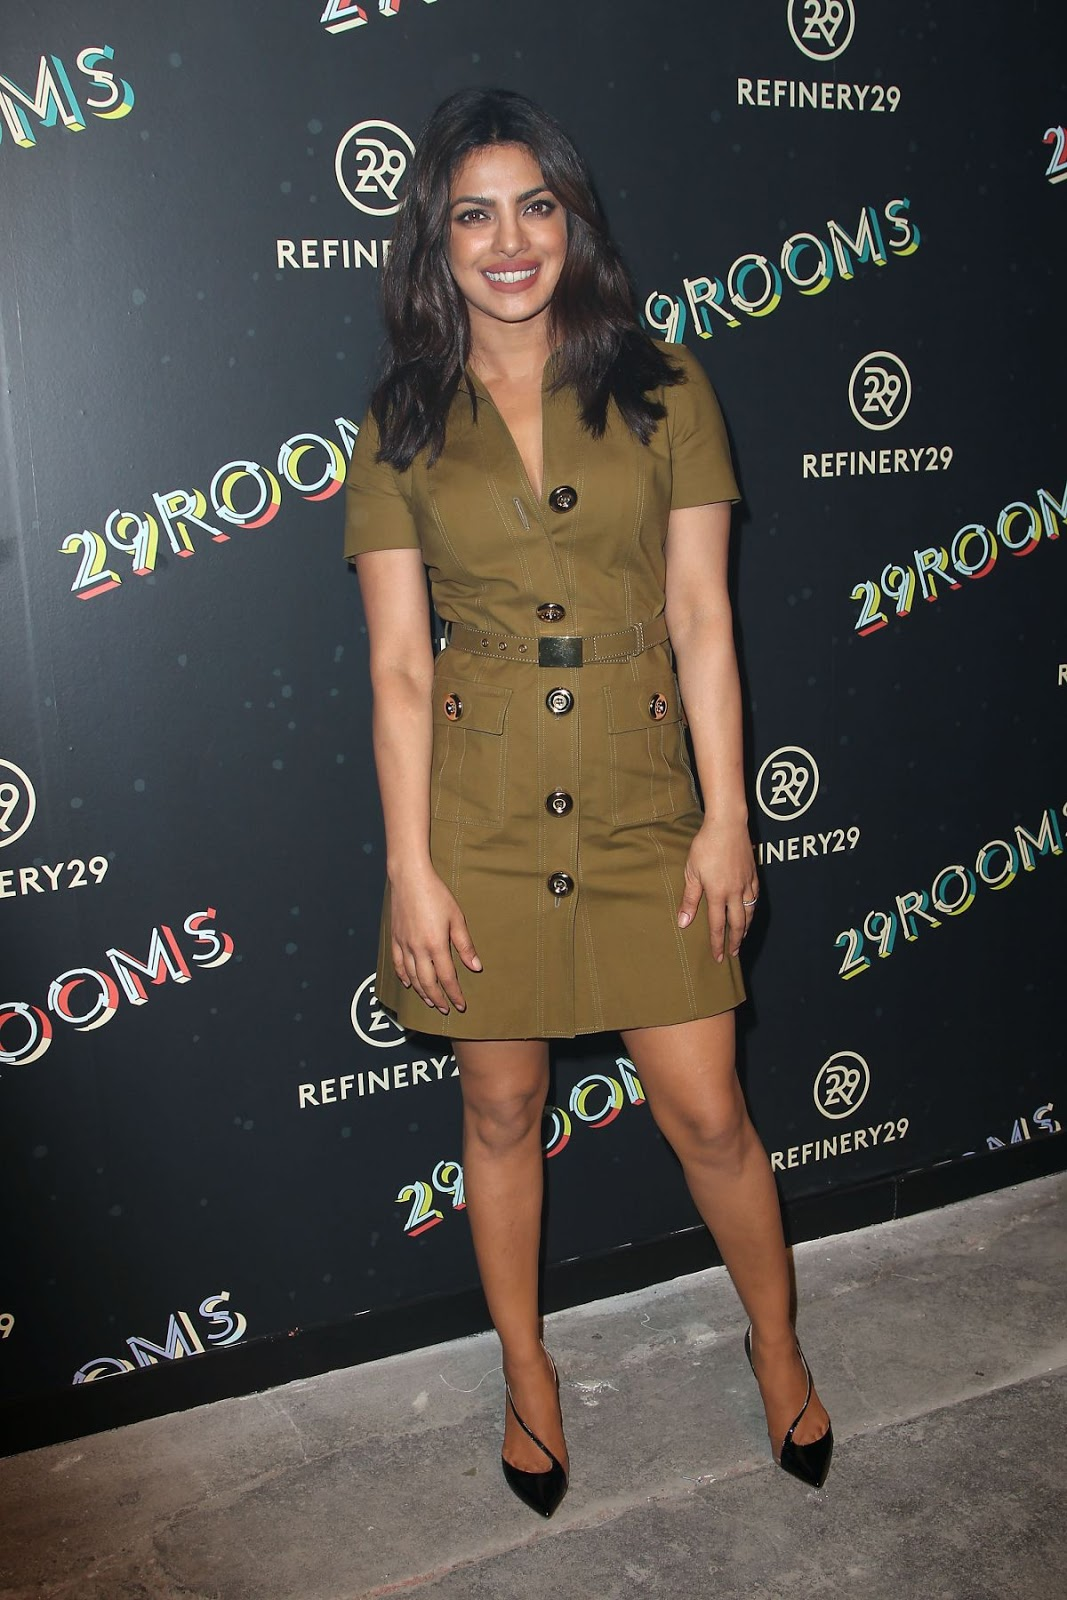 HQ Photos of Priyanka Chopra At 29 Rooms Refinery29's Second Annual New York Fashion Week Event In New York